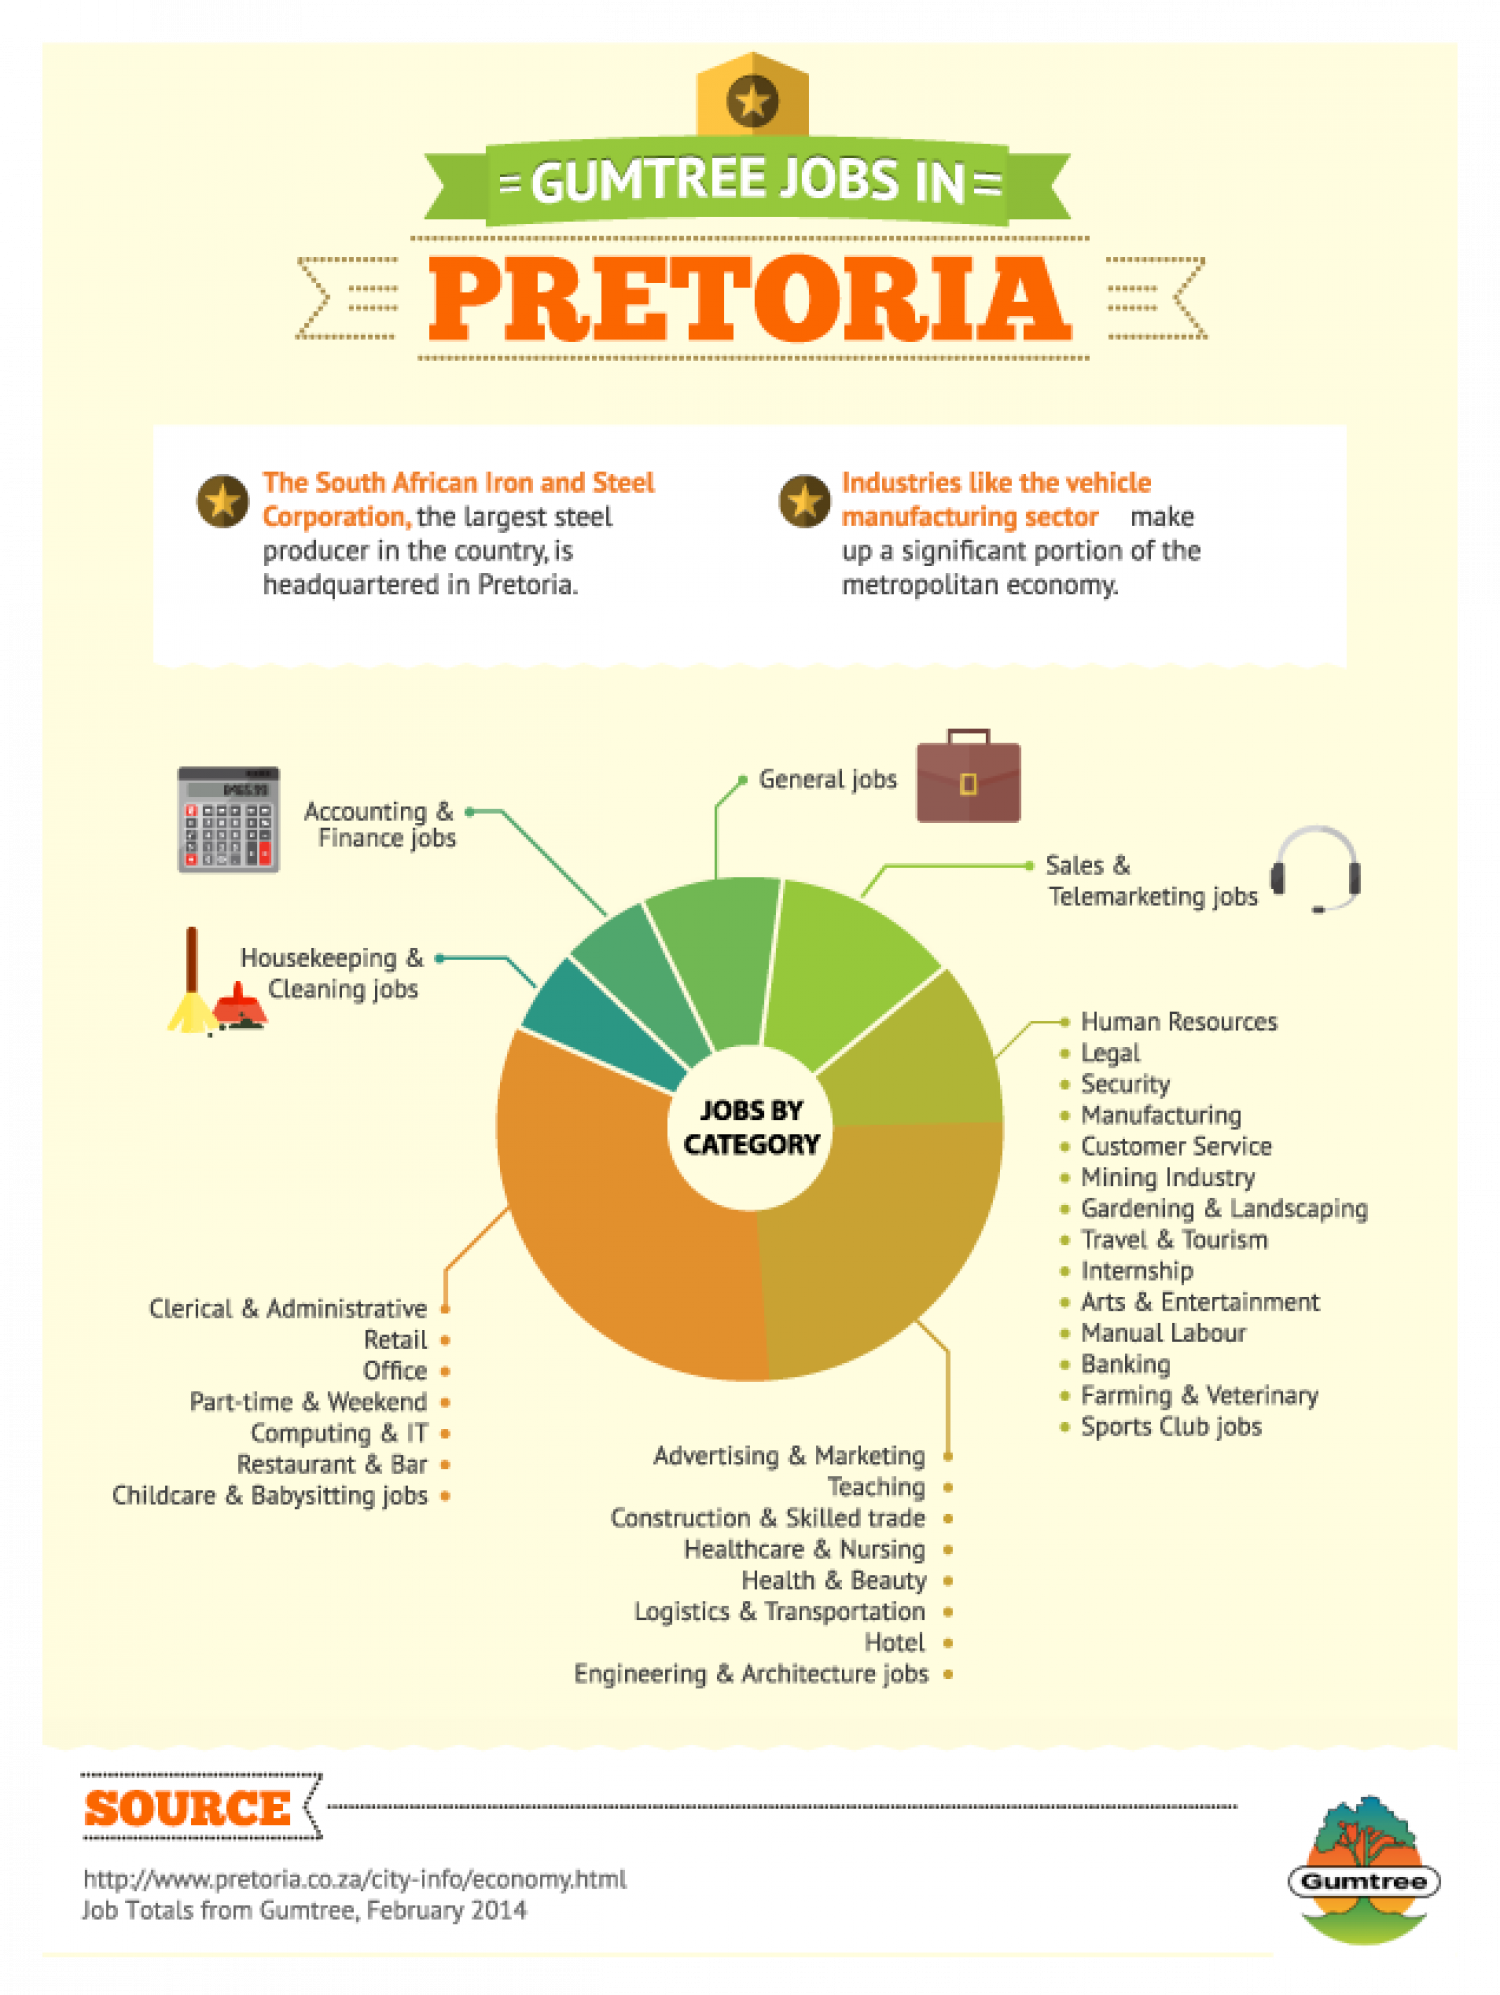 Gumtree Jobs in Pretoria Infographic